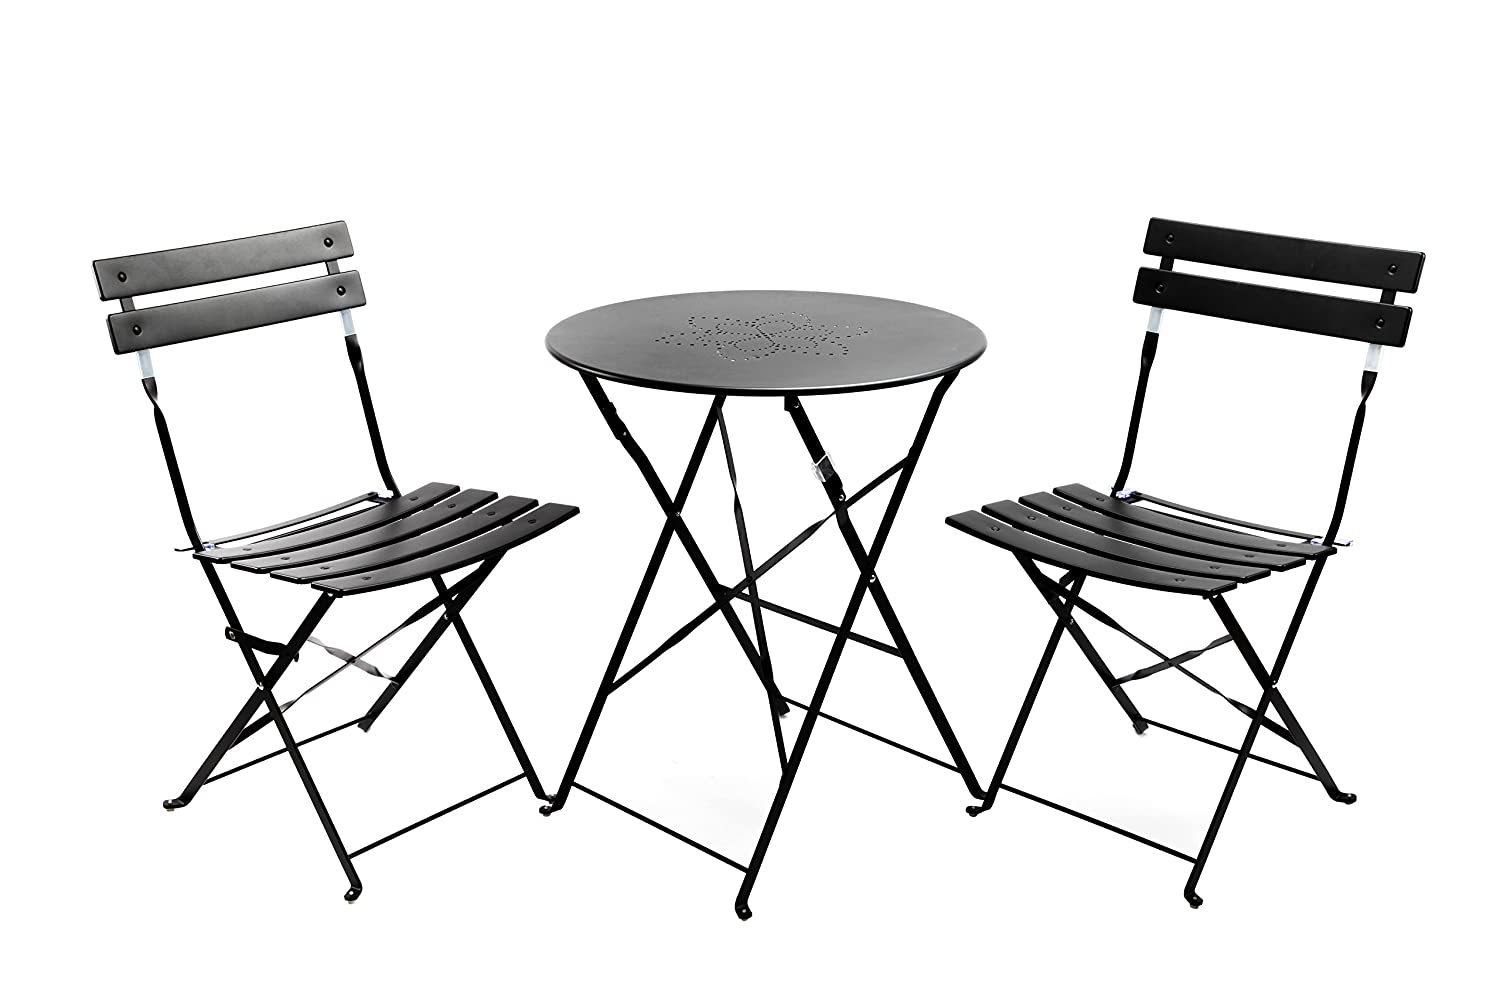 amazoncom finnhomy slatted 3 piece outdoor patio furniture sets bistro sets steel folding table and chair set with safe lock for indoors and outdoors